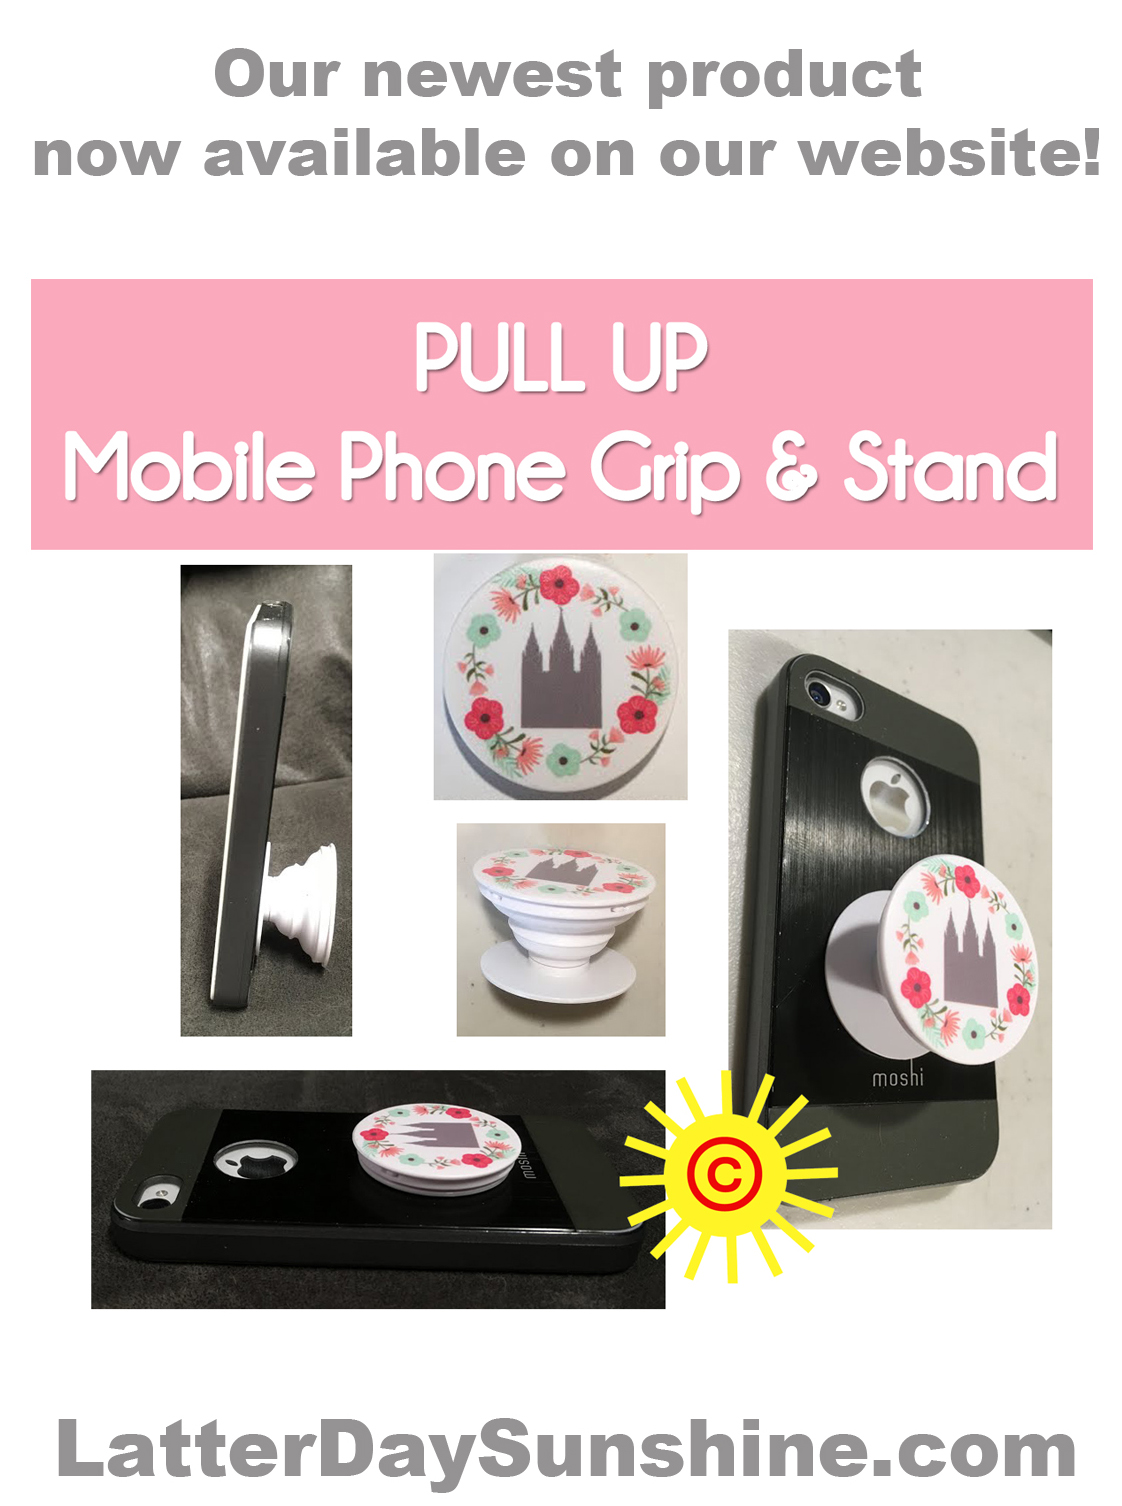 TEMPLE PHONE GRIP & STAND